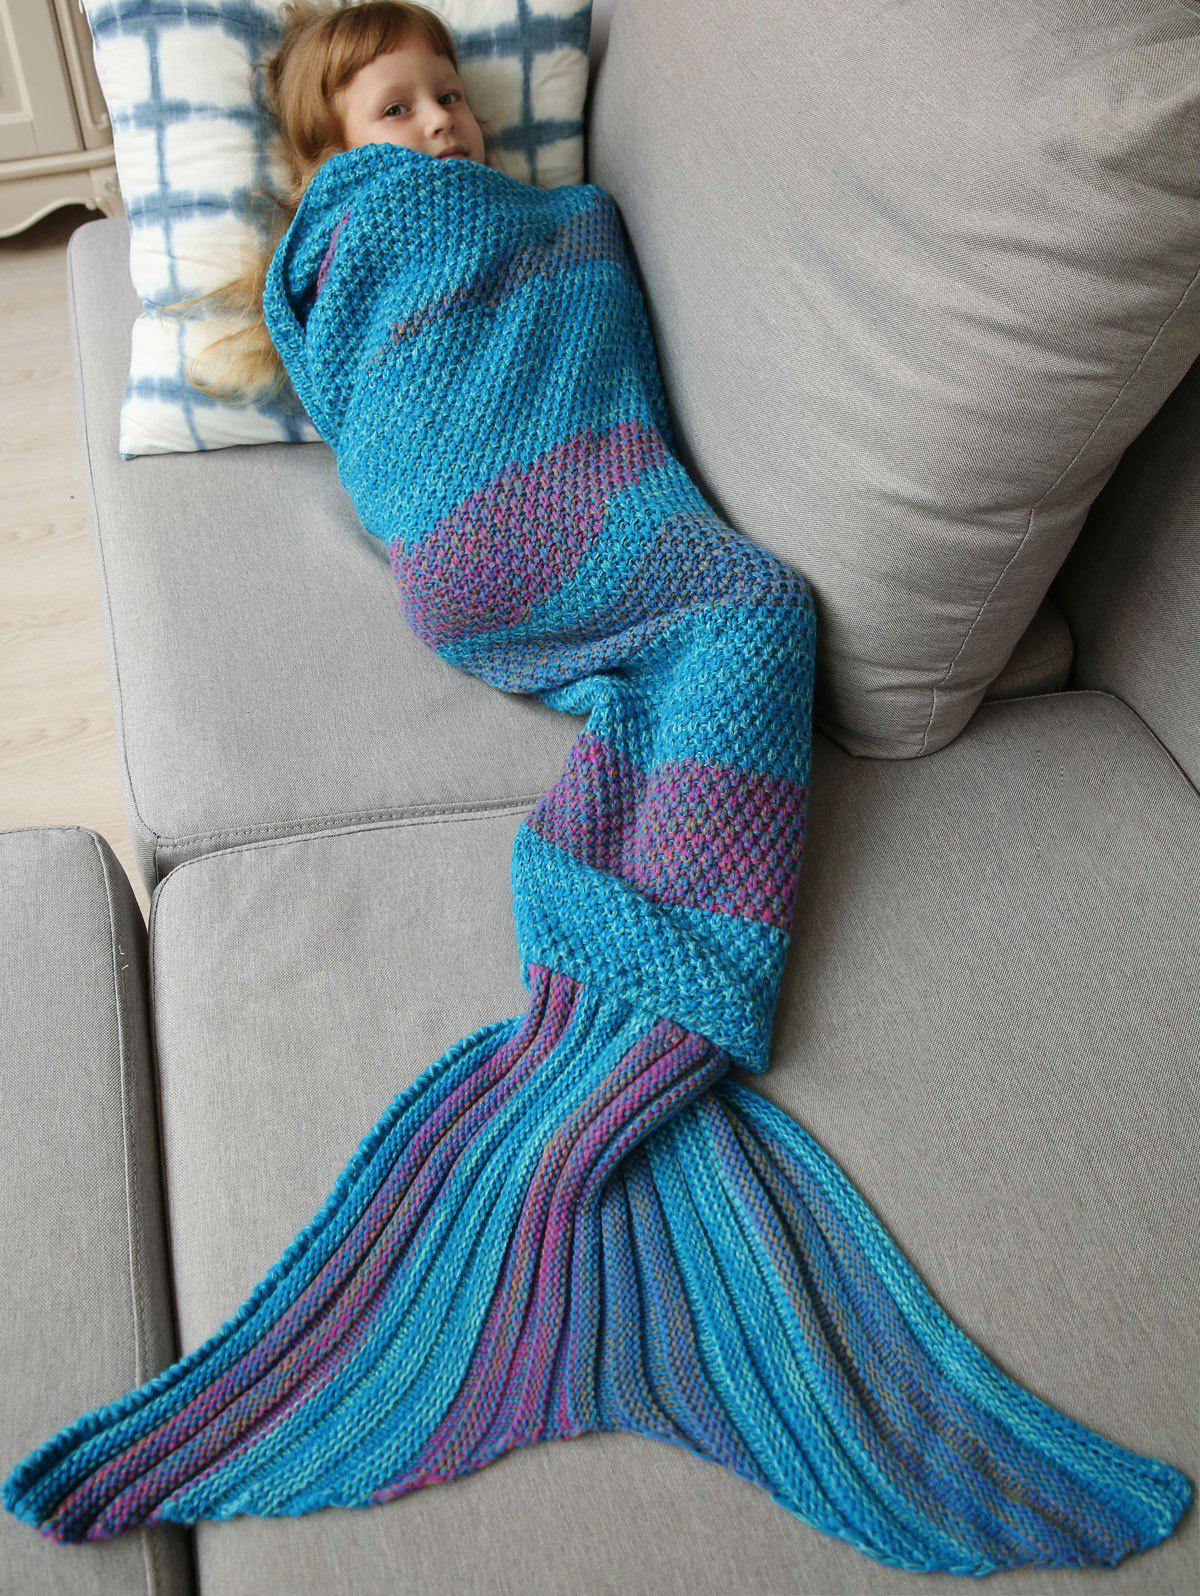 Winter Thicken Longer Color Block Design Knitted Wrap Kids Mermaid Tail Blanket - BLUE / PURPLE